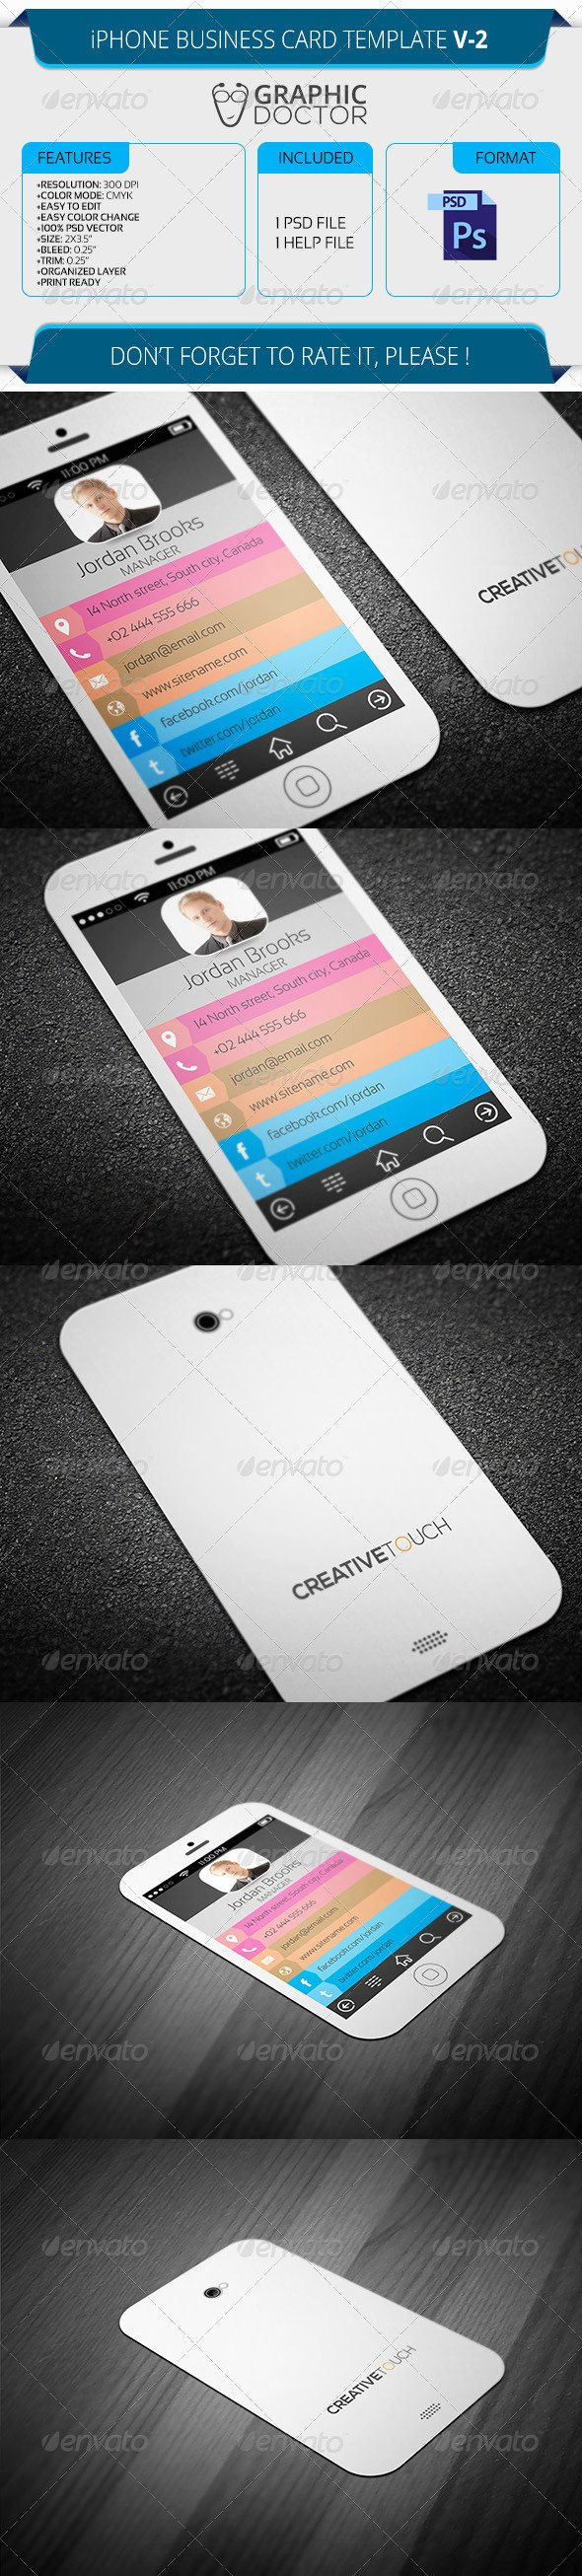 iPhone Business Card Template Luxury iPhone Business Card Template V 2